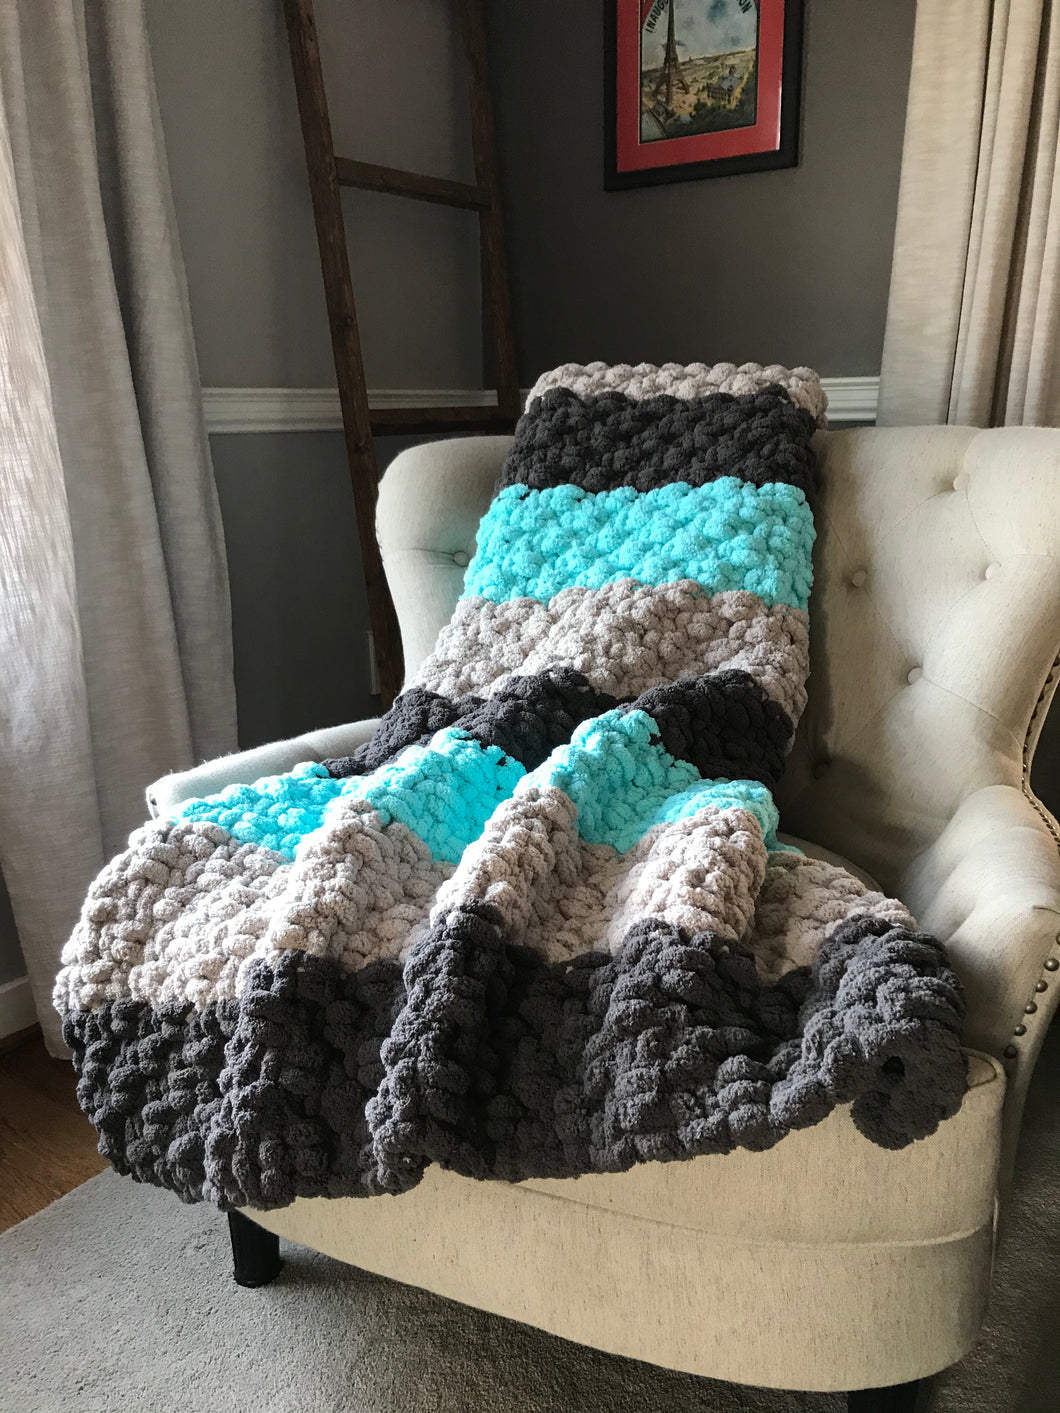 Chunky Knit Blanket | Aqua and Gray Striped Throw - Hands On For Homemade